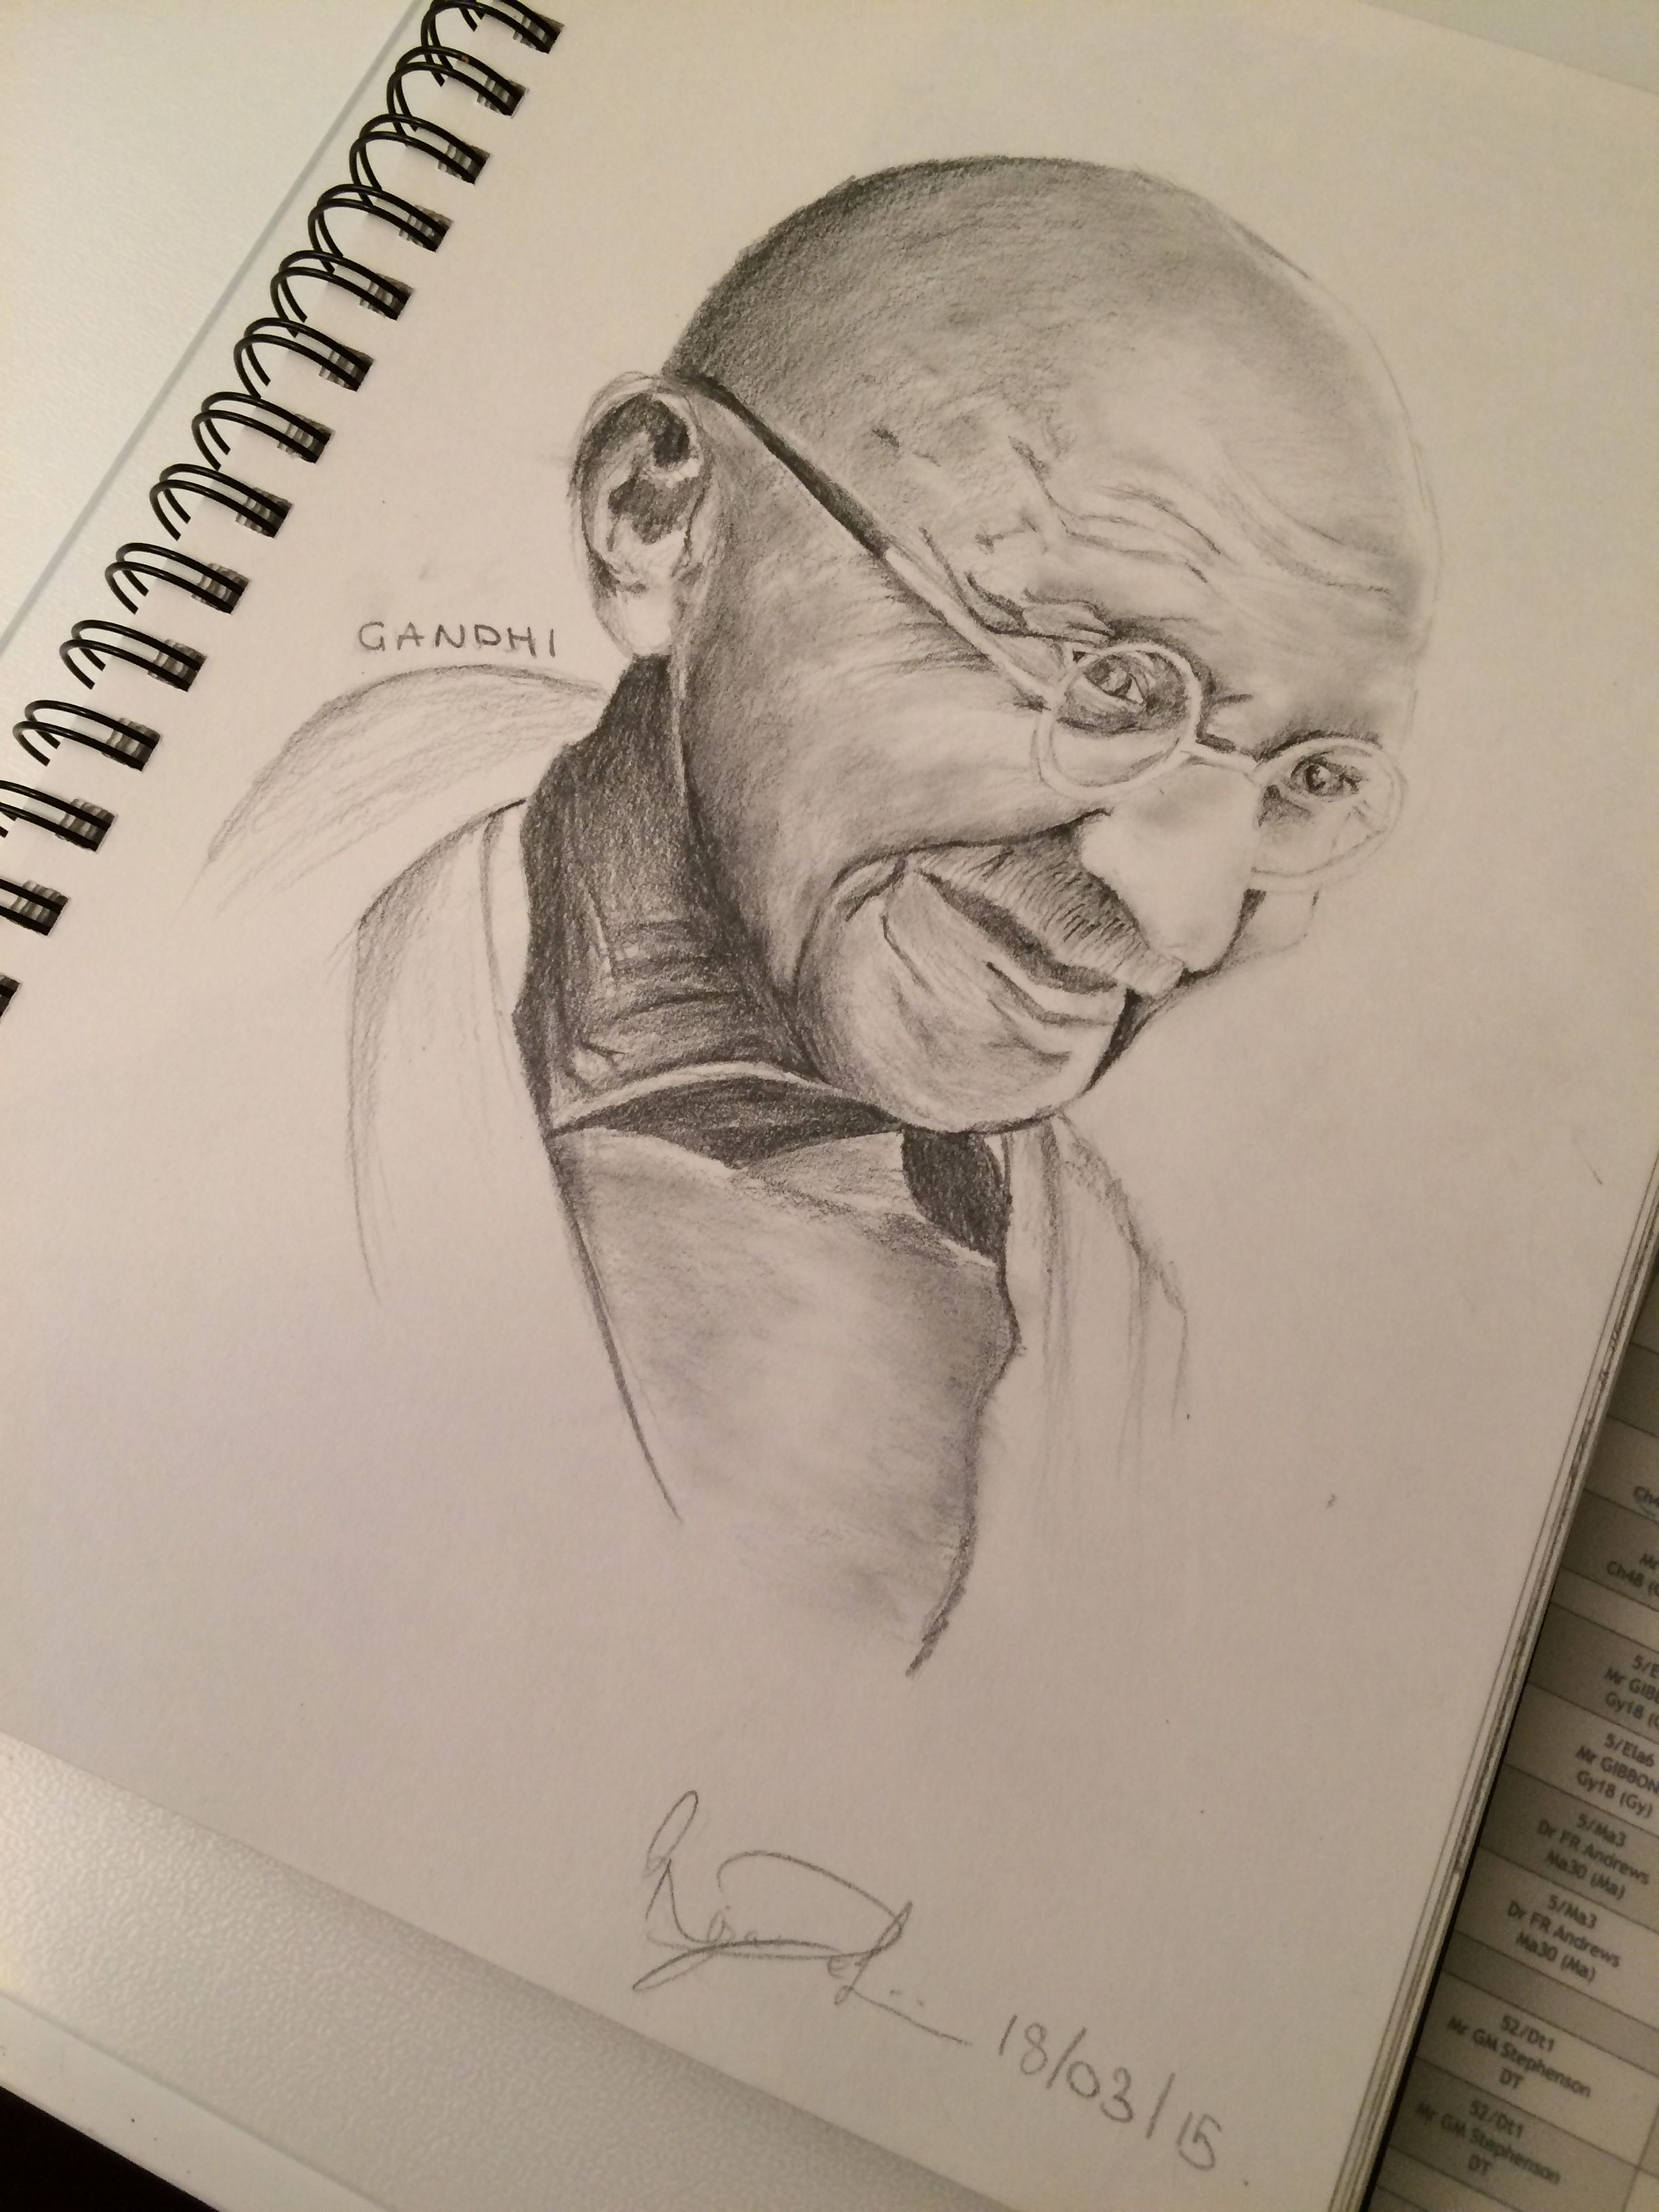 Mahatma gandhi pencil drawing mahatma gandhi pencil drawings i have done drawings in